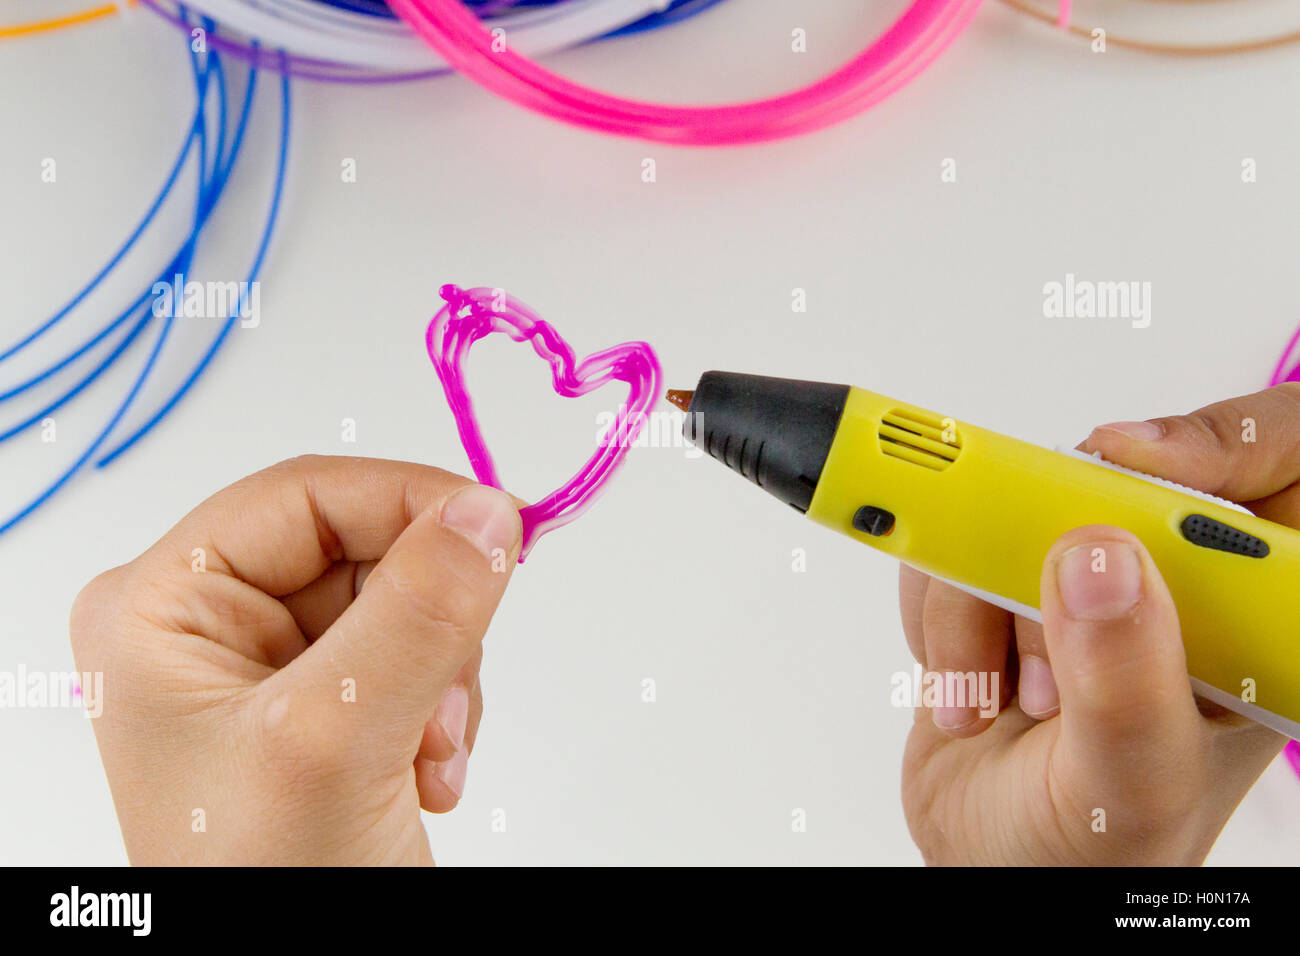 Child makes with 3d drawing pen a heart. Colourful filaments and white background. Top view. Close up - Stock Image